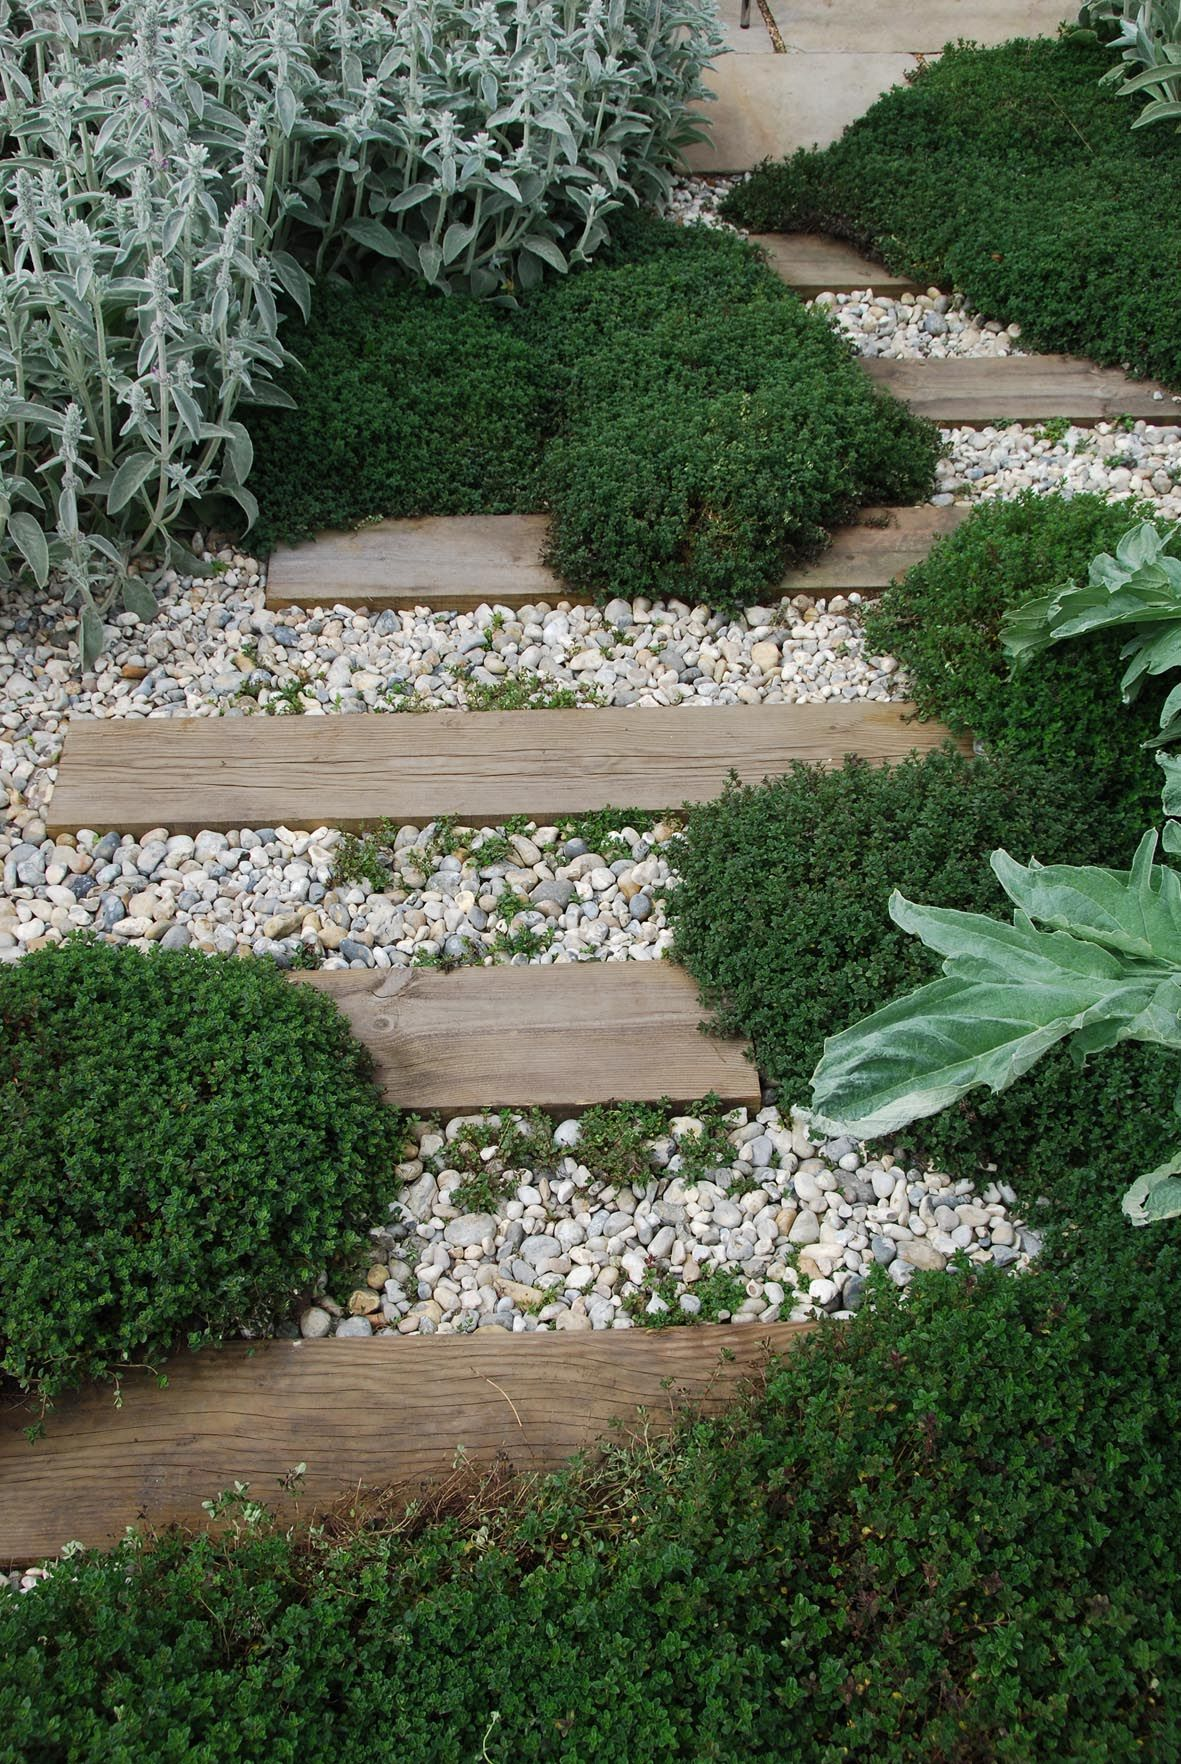 sleepers small stone drifts of creeping mint or thyme